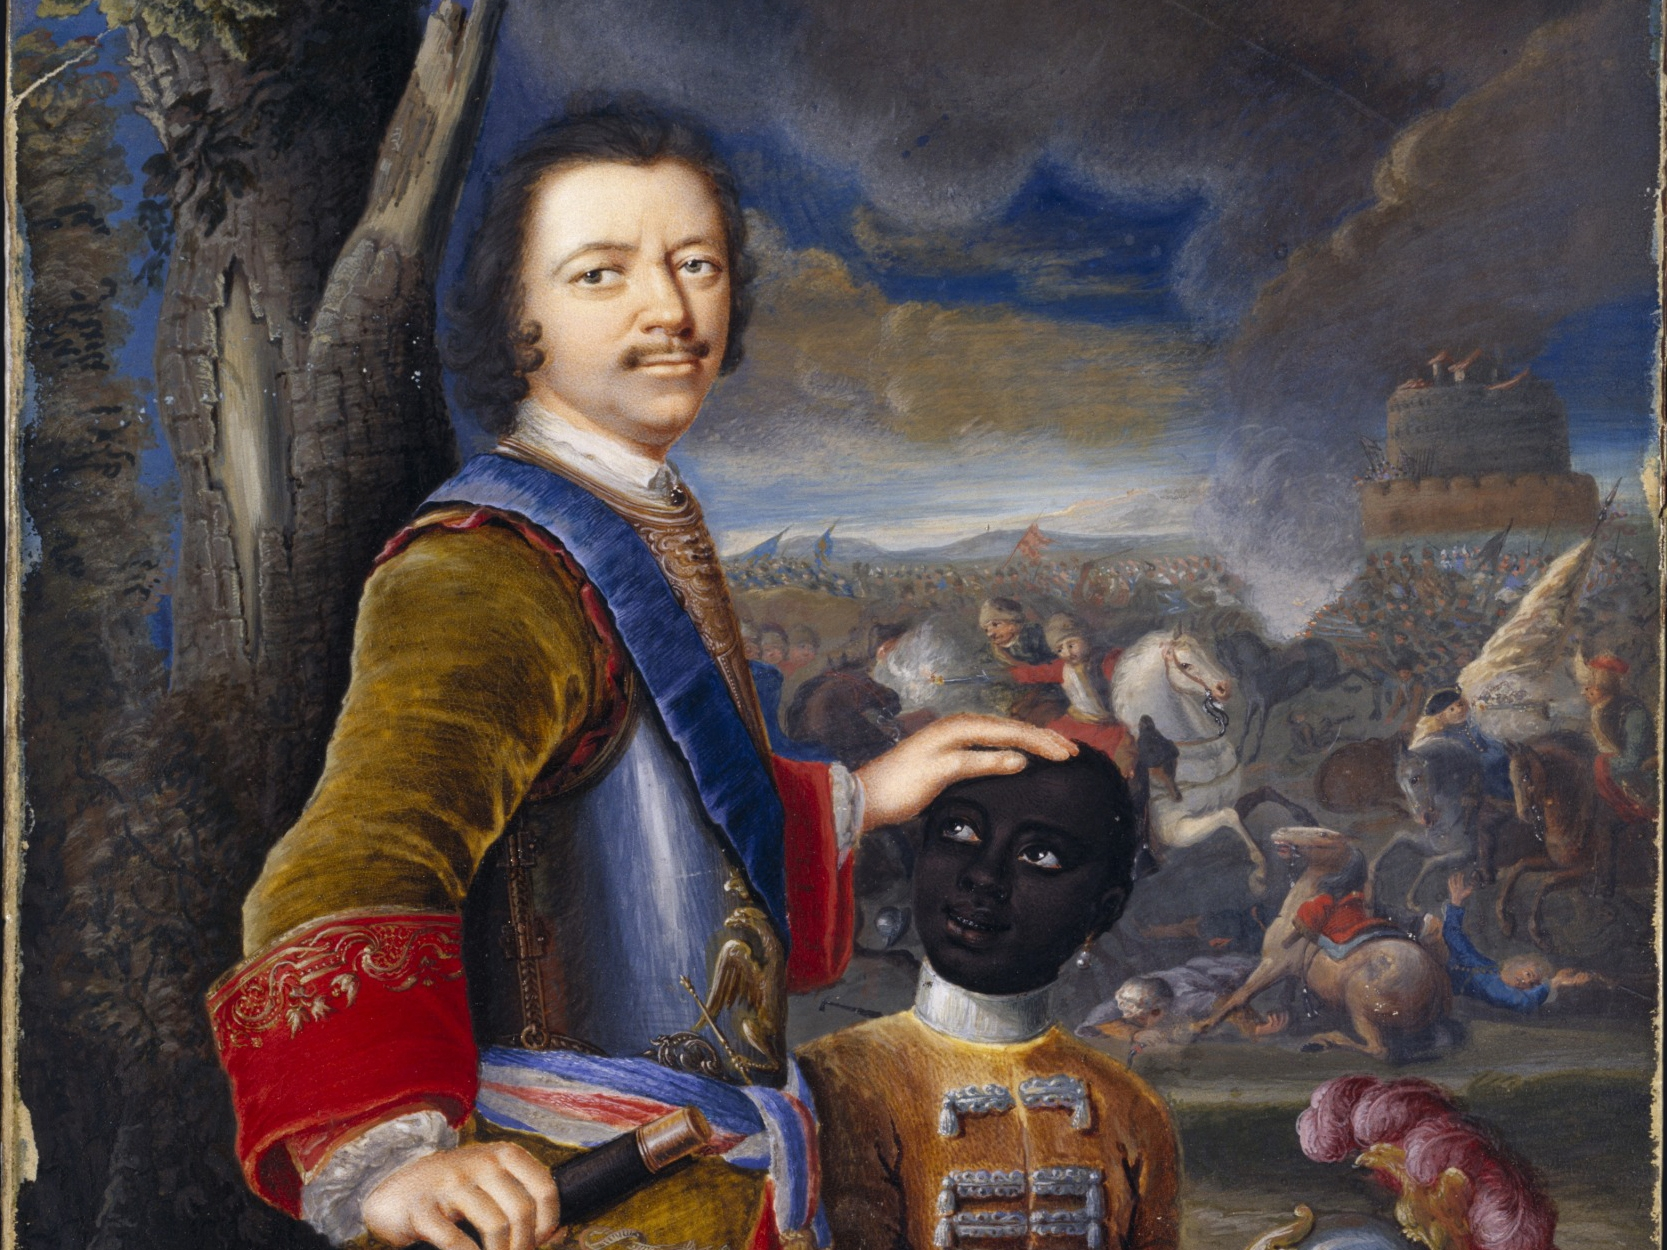 Peter the Great took the Port of Azov from the Ottoman Turks. He studied shipping ports of Europe and built St. Petersburg. He fought the Great Northern War in 1721, he captured the Baltic Sea from Sweden, expanding Russia to Europe.